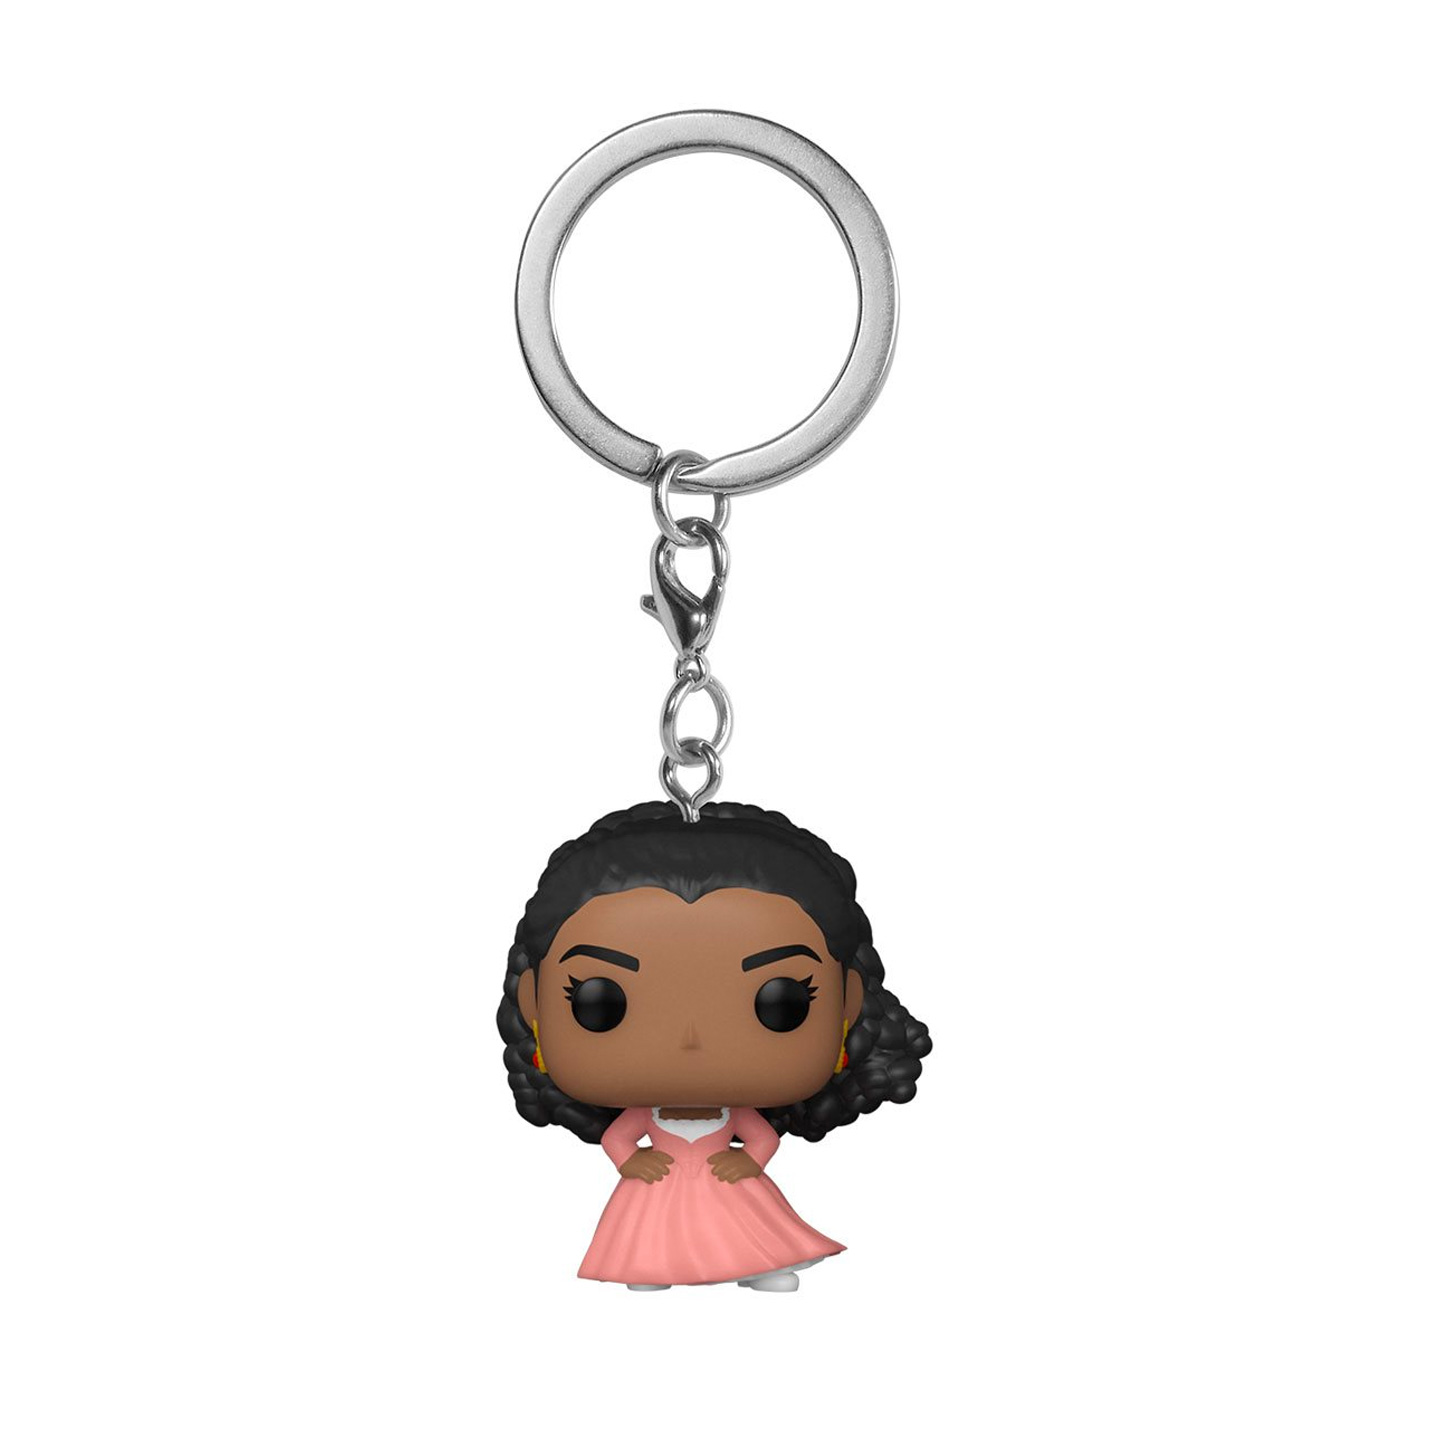 We're flipping over this Anglica Schuyler Funko pop keychain!